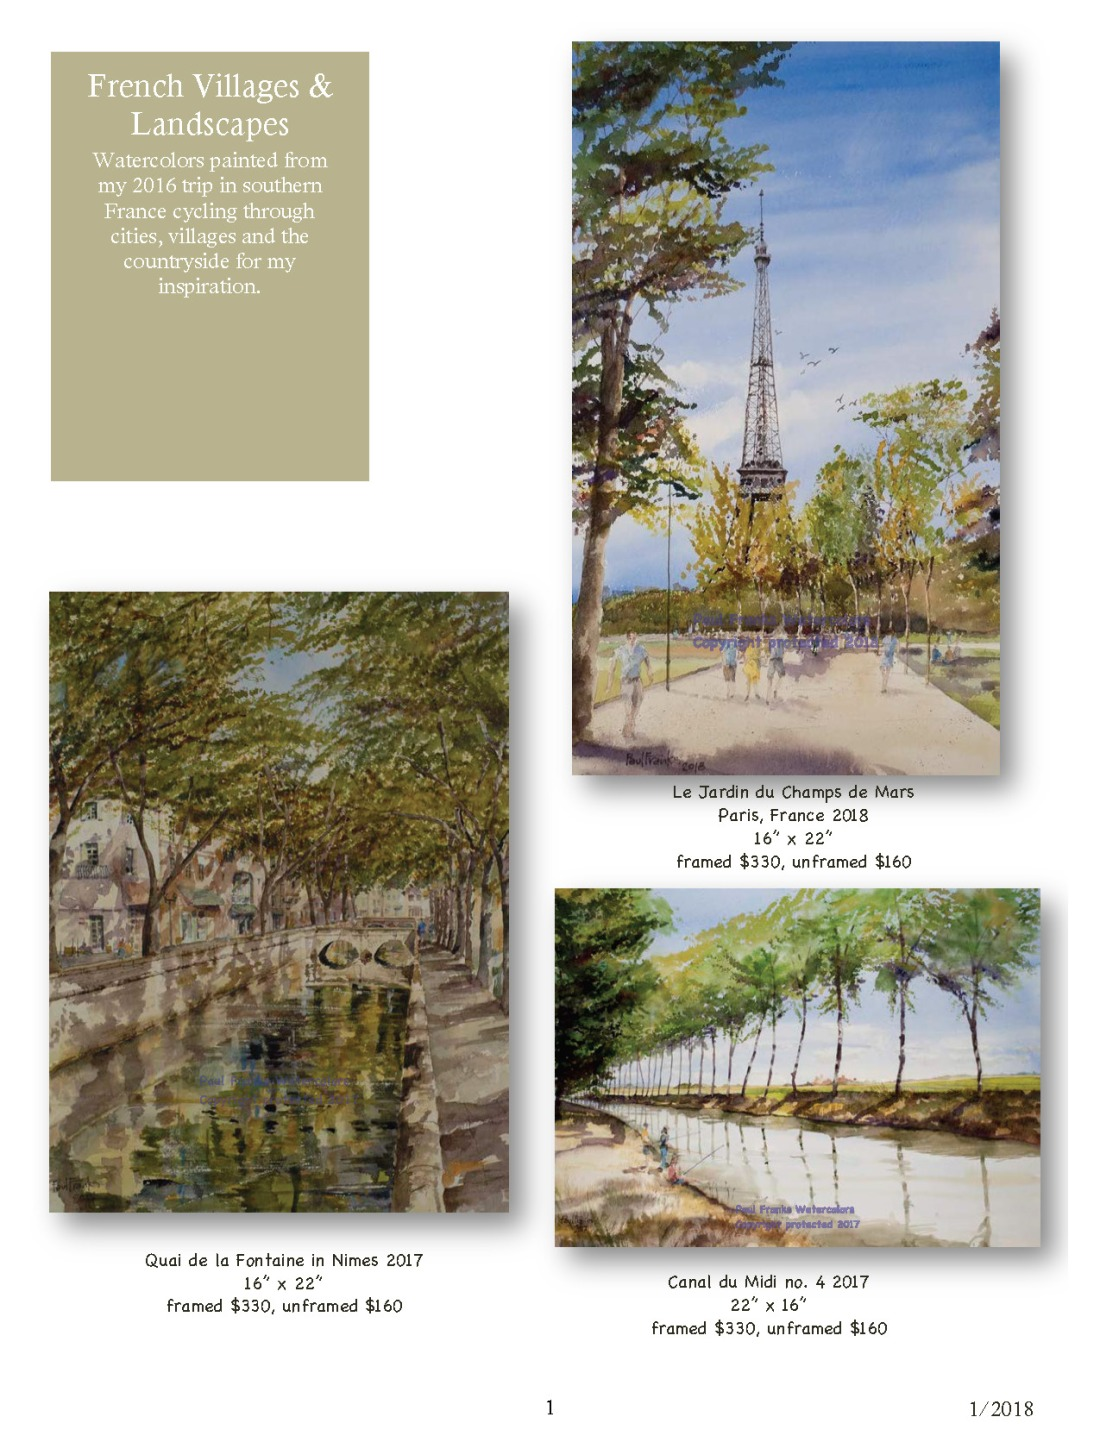 Paul Franks Watercolor Catalog-2 French Landscapes1_11_18_Page_1